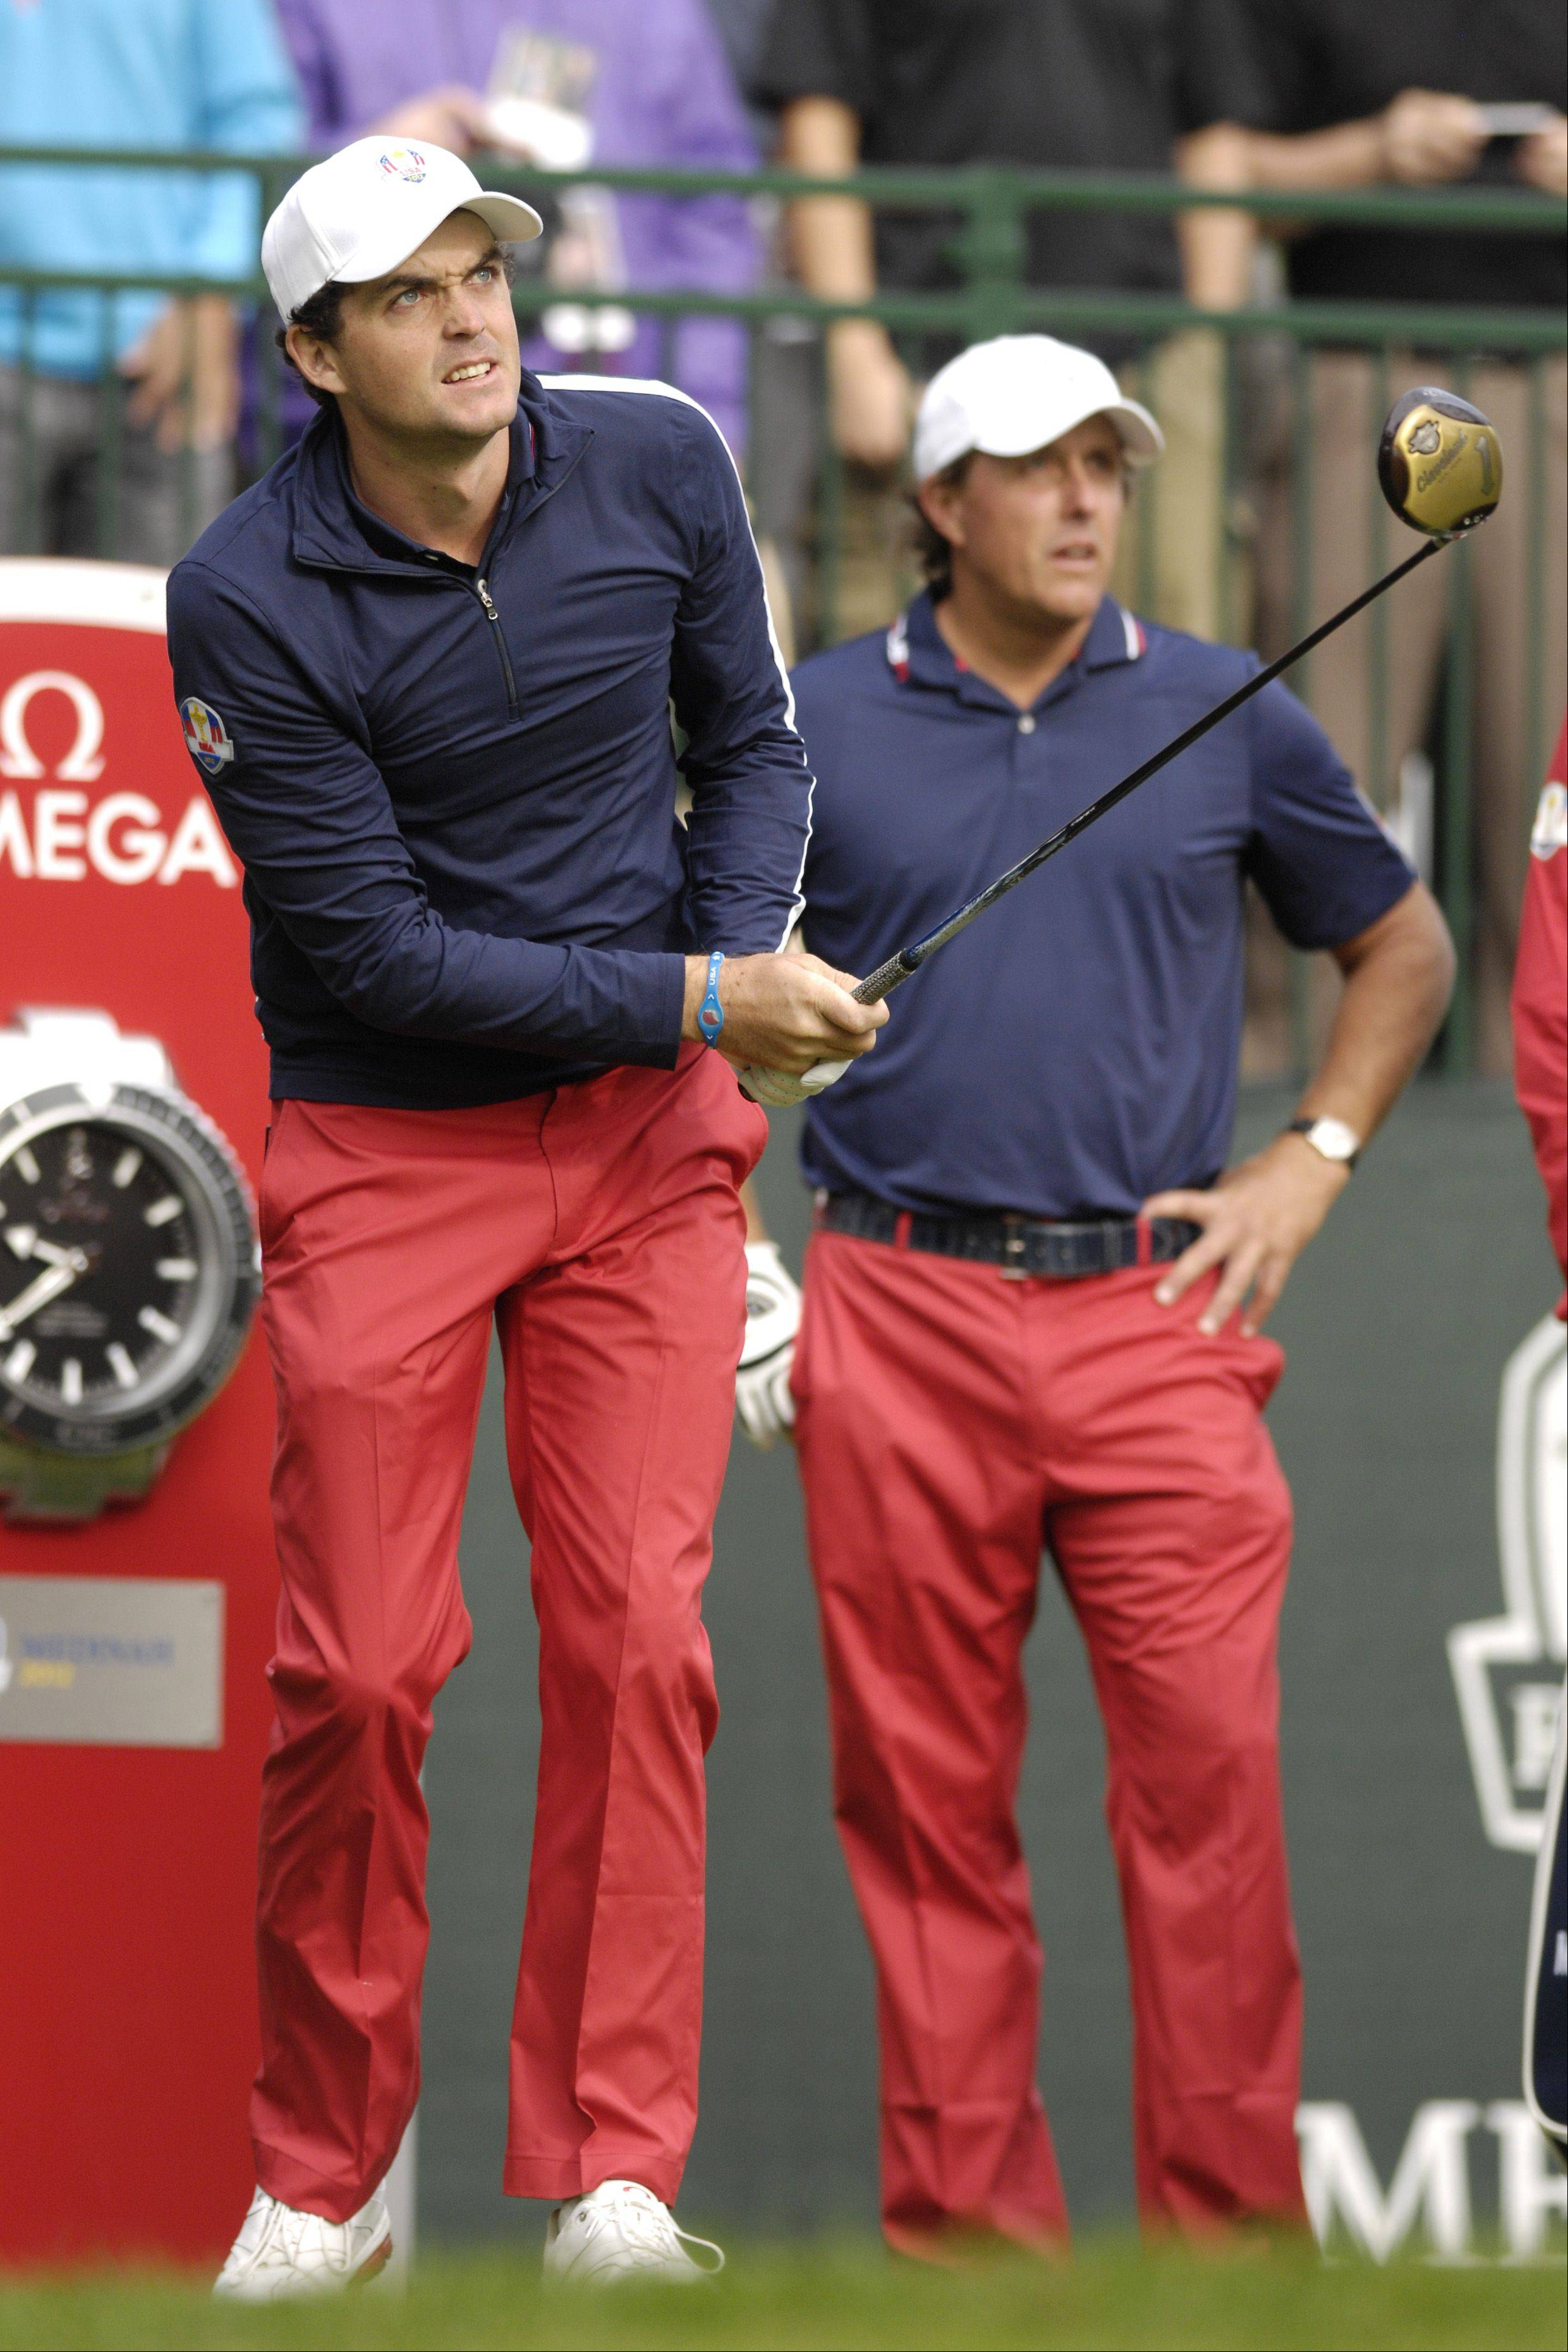 Keegan Bradley and Phil Mickelson of Team USA could be a likely pairing at the Ryder Cup. Mickelson said he likes the energy and enthusiasm the rookie brings to the course.